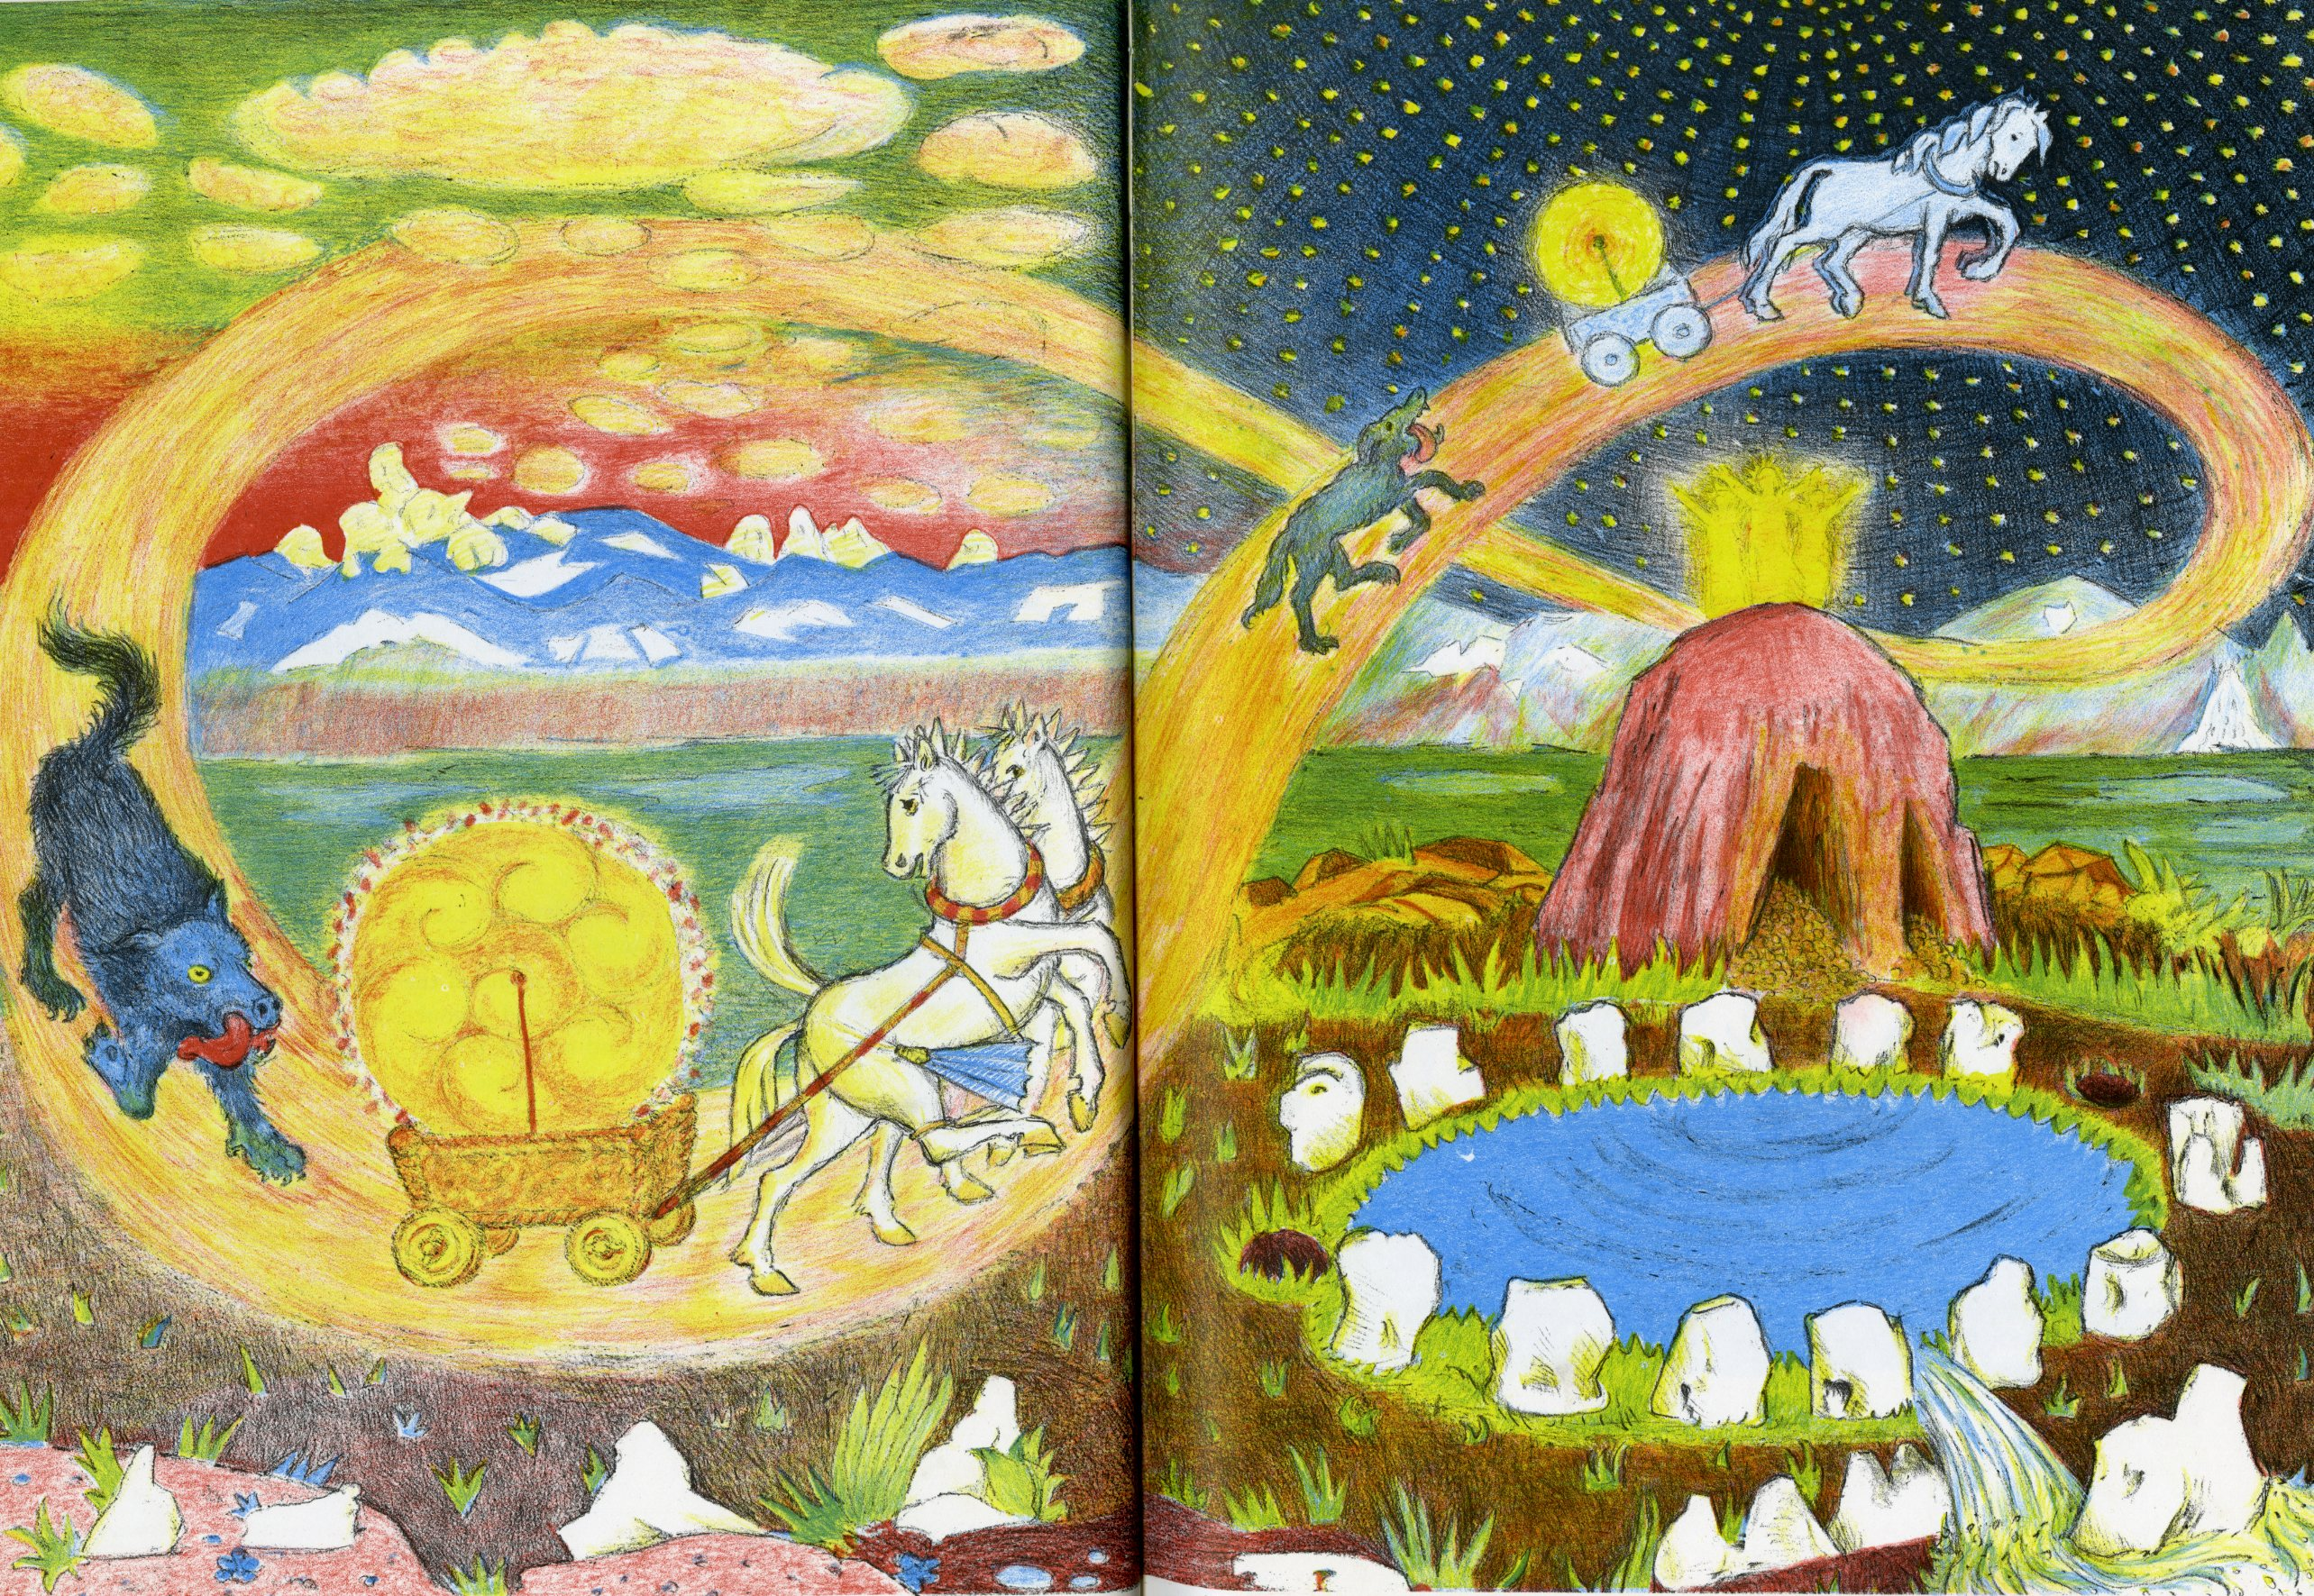 giddy up books around the table the creation of the world from d aulaire s norse gods and giants 1967